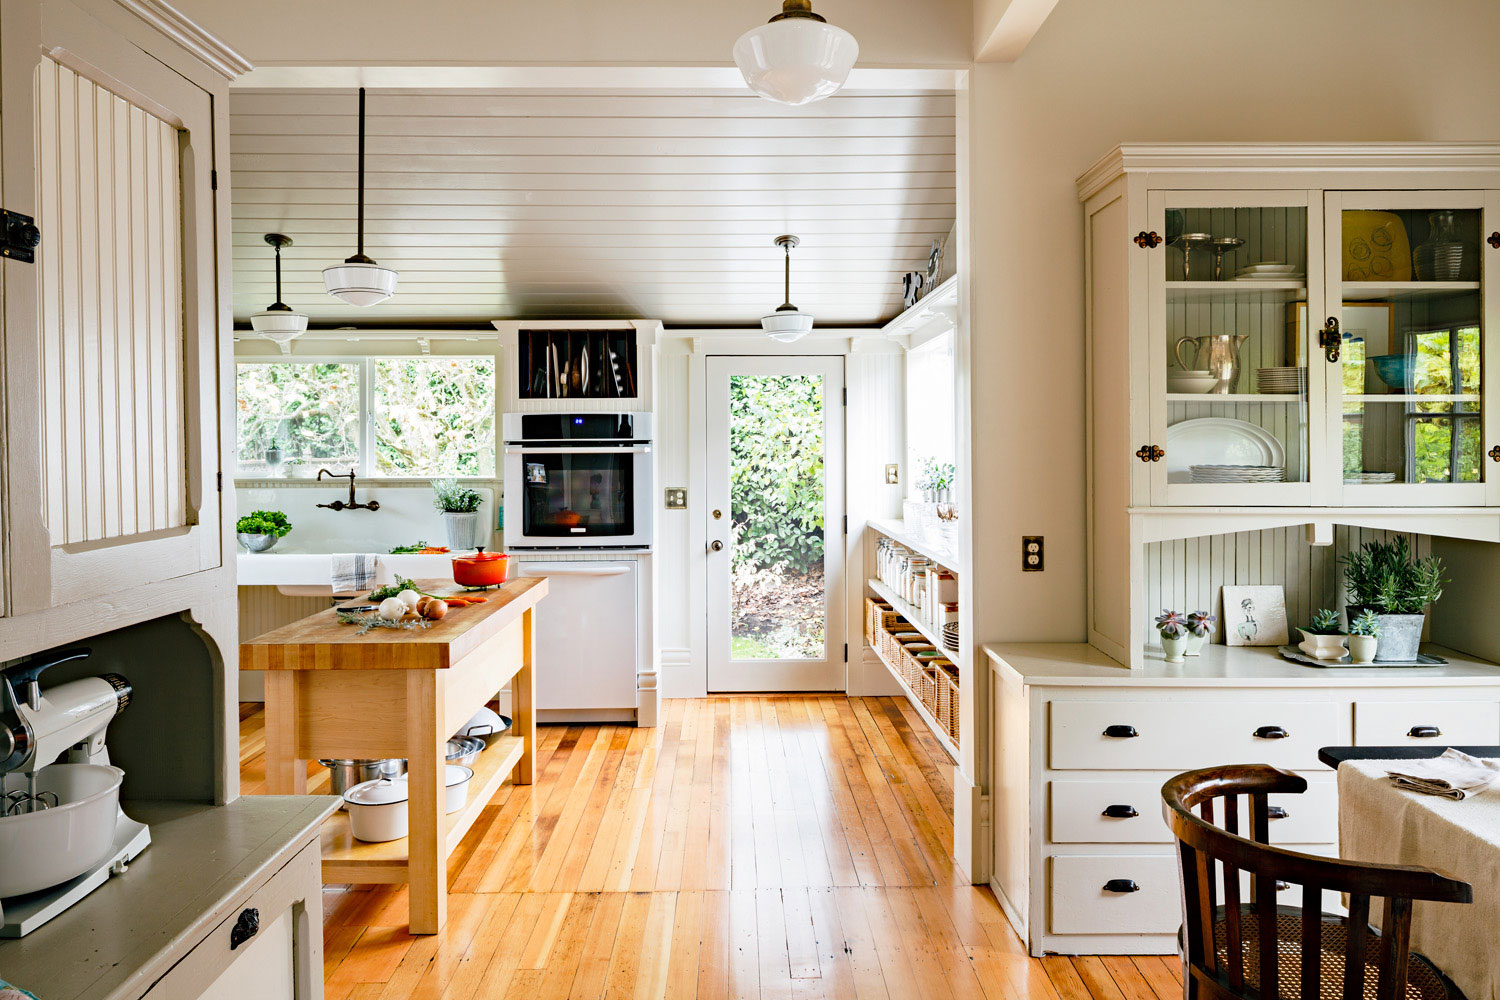 How to Design a Vintage Modern Kitchen